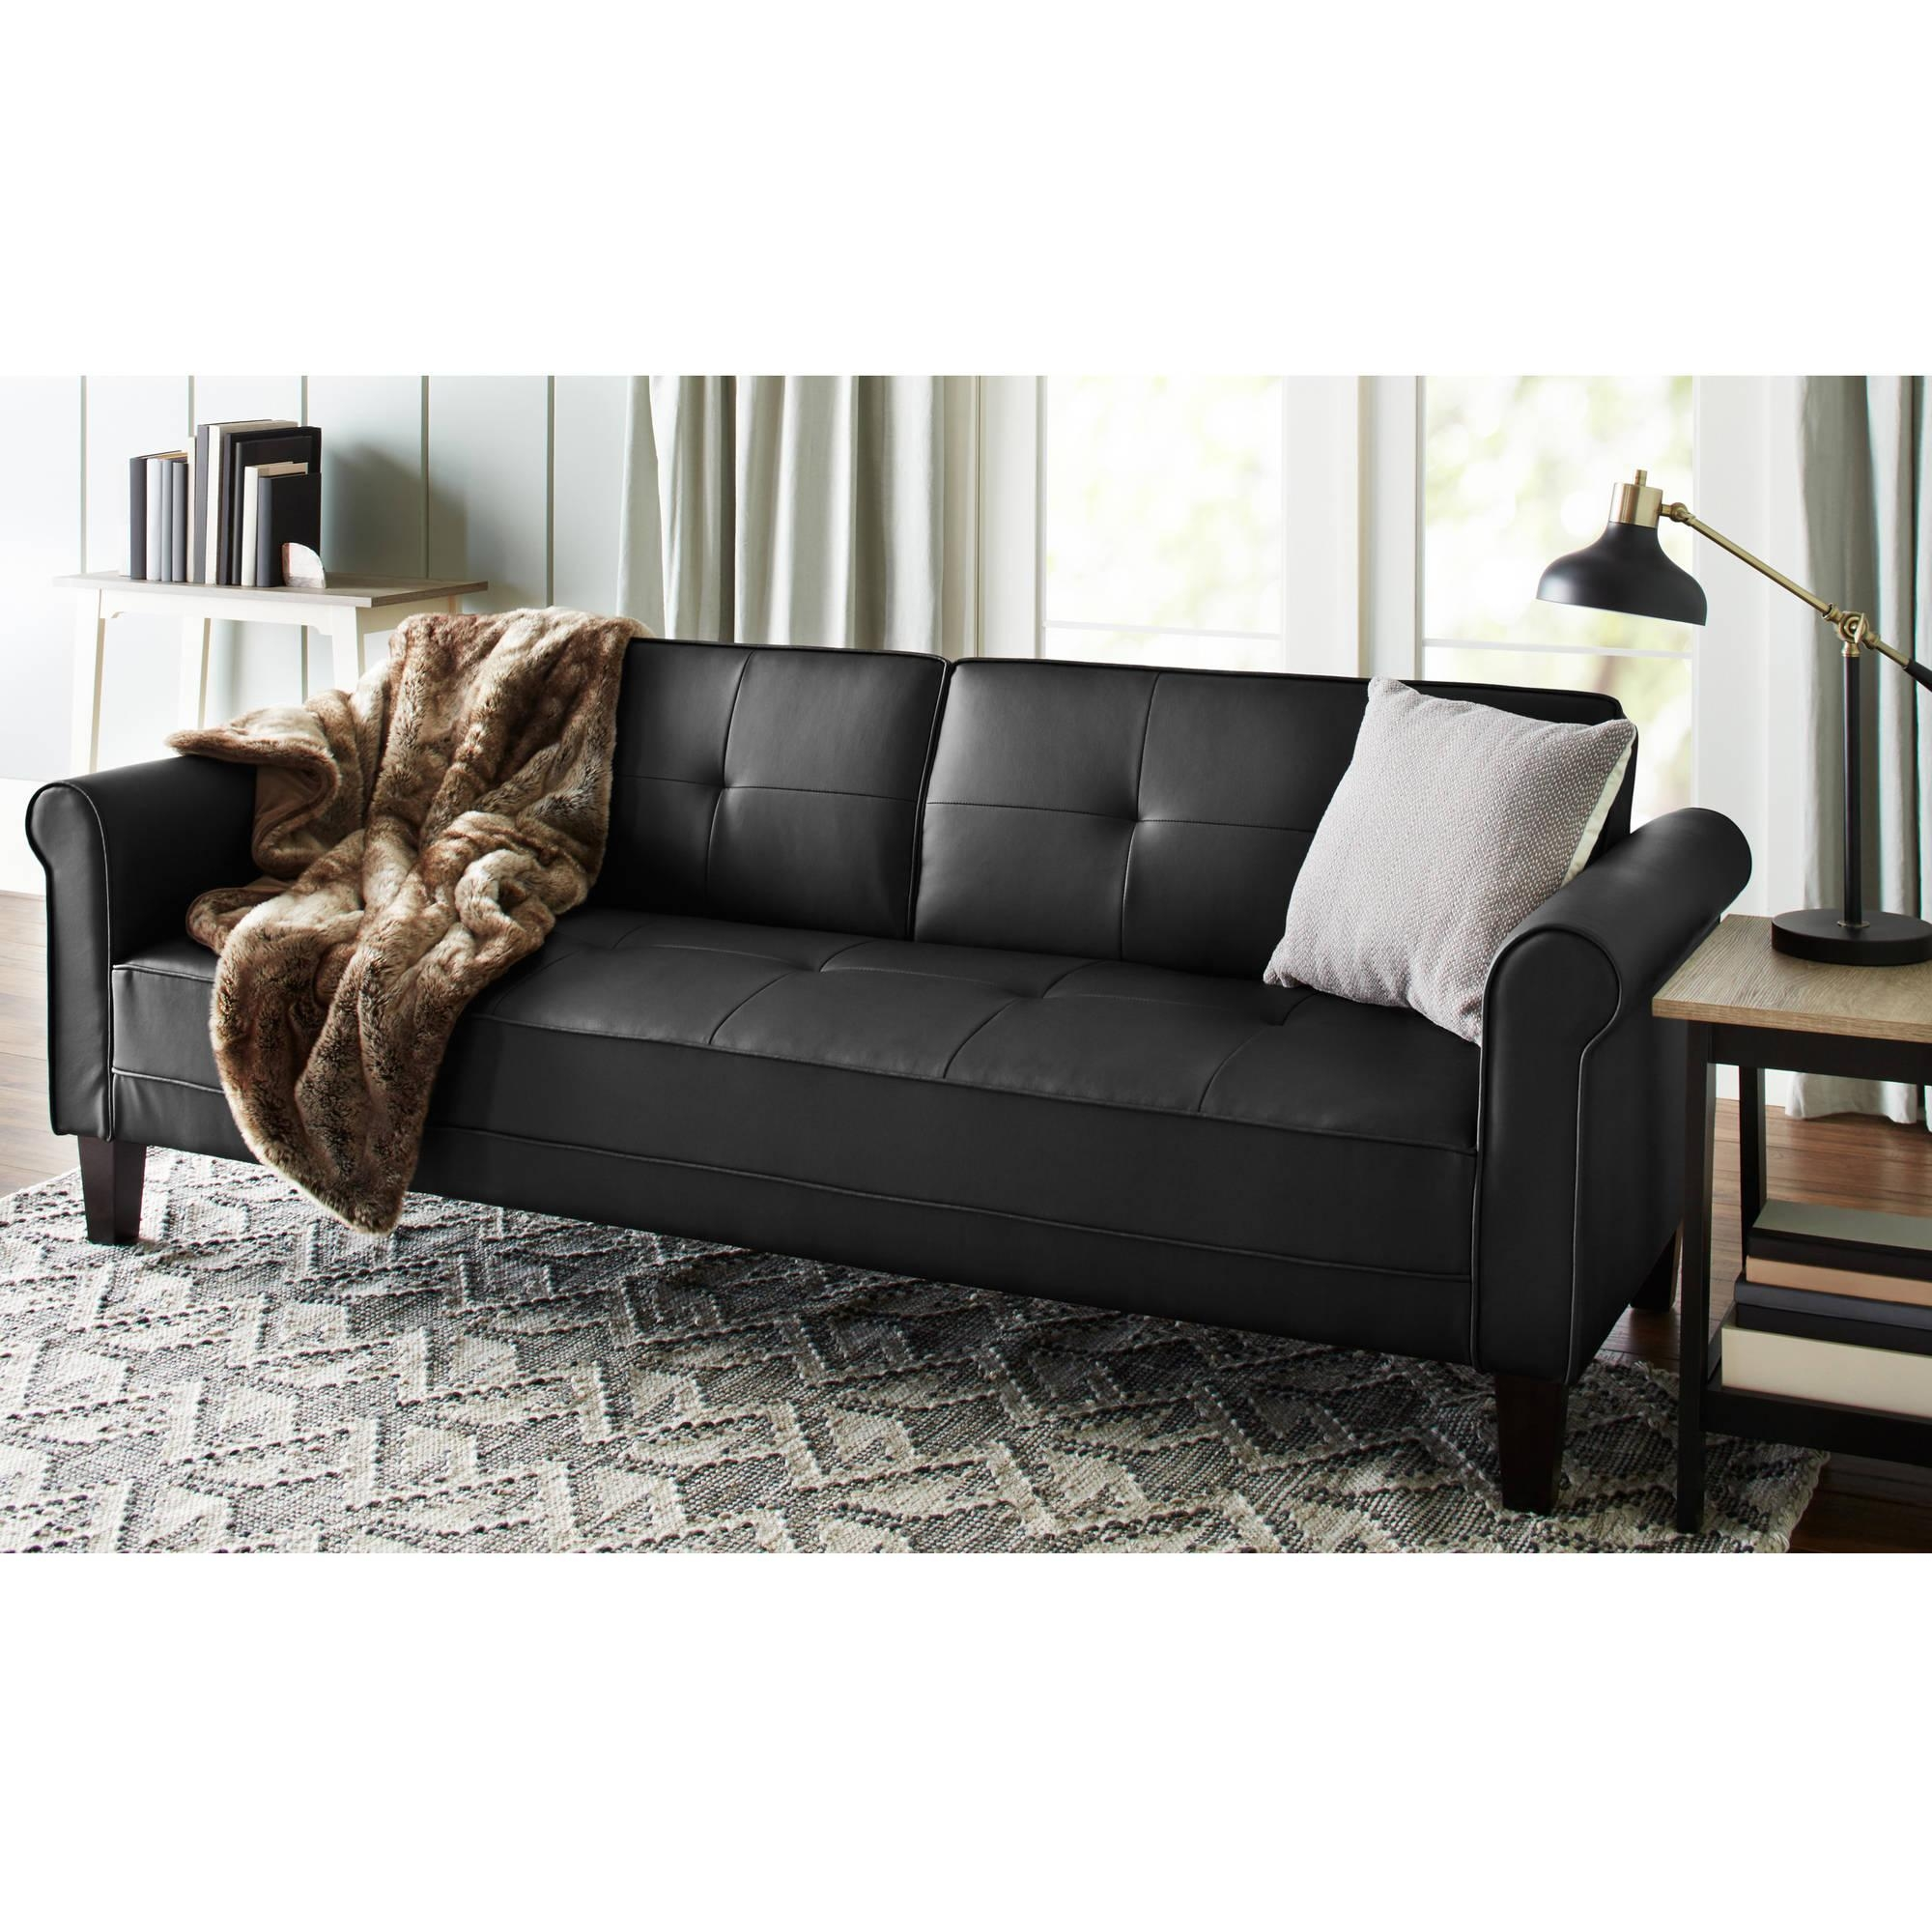 room and board leather sofa bed covers for 3 seater 20 43 choices of harrison sofas ideas